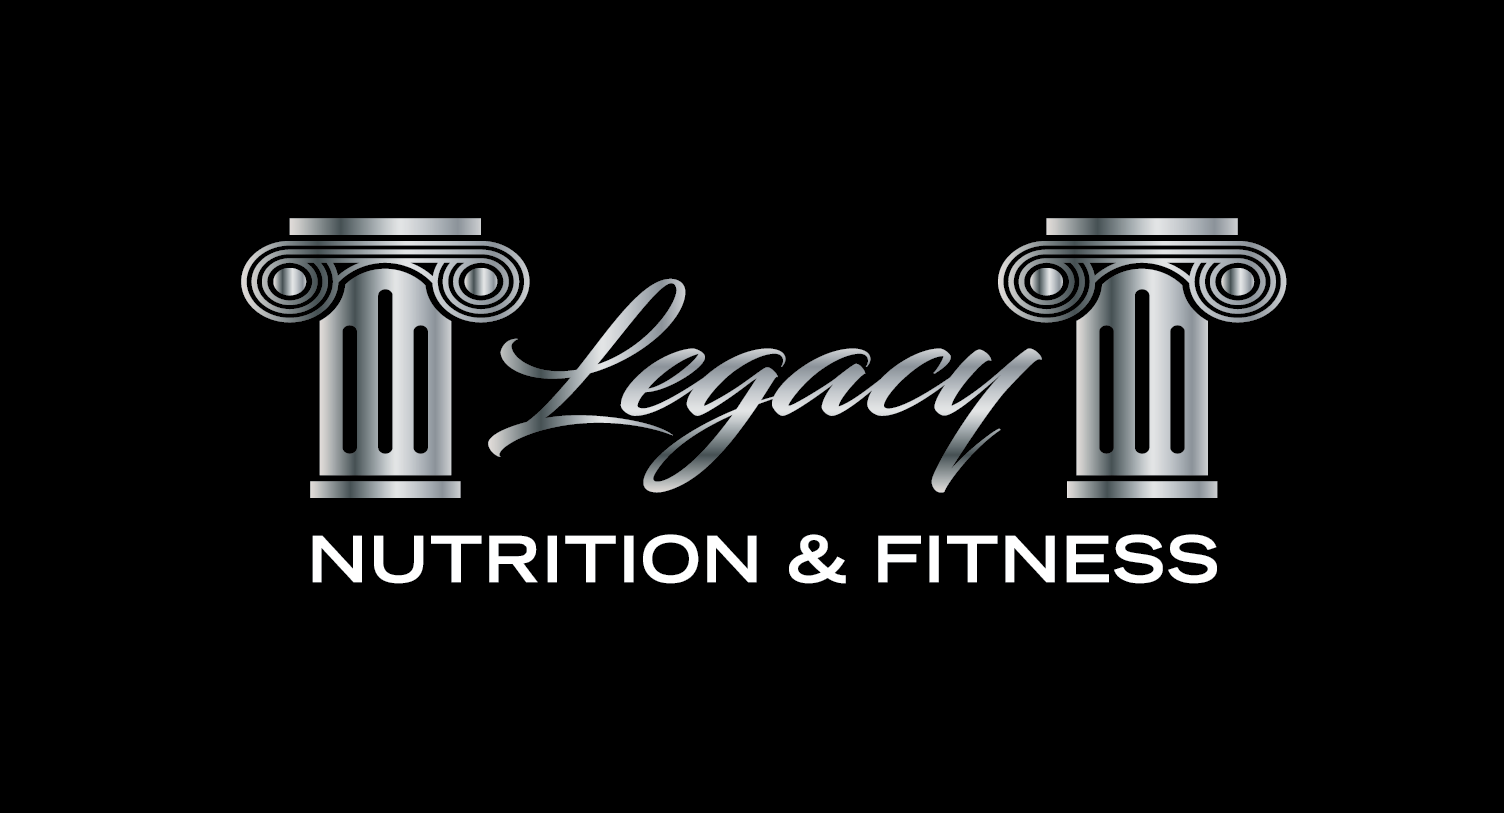 LEGACY NUTRITION AND FITNESS - PLATINUM SPONSOR